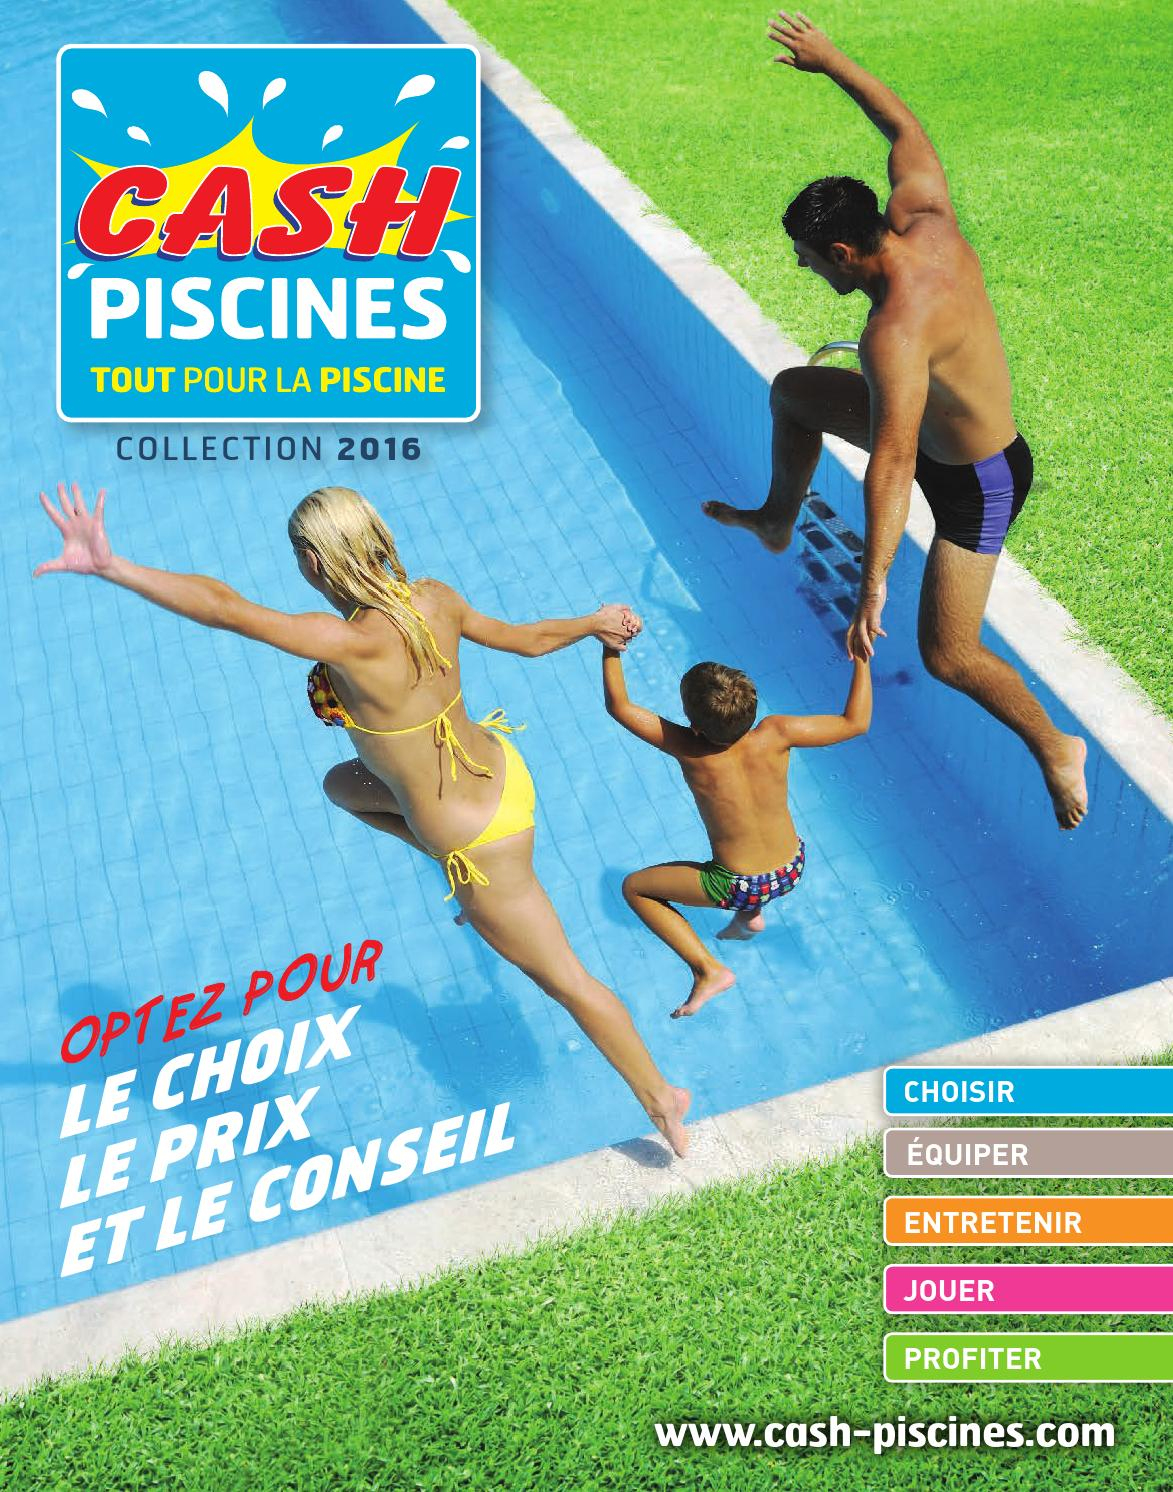 Cash Piscines 2016 By Octave Octave - Issuu pour Cash Piscine Agen